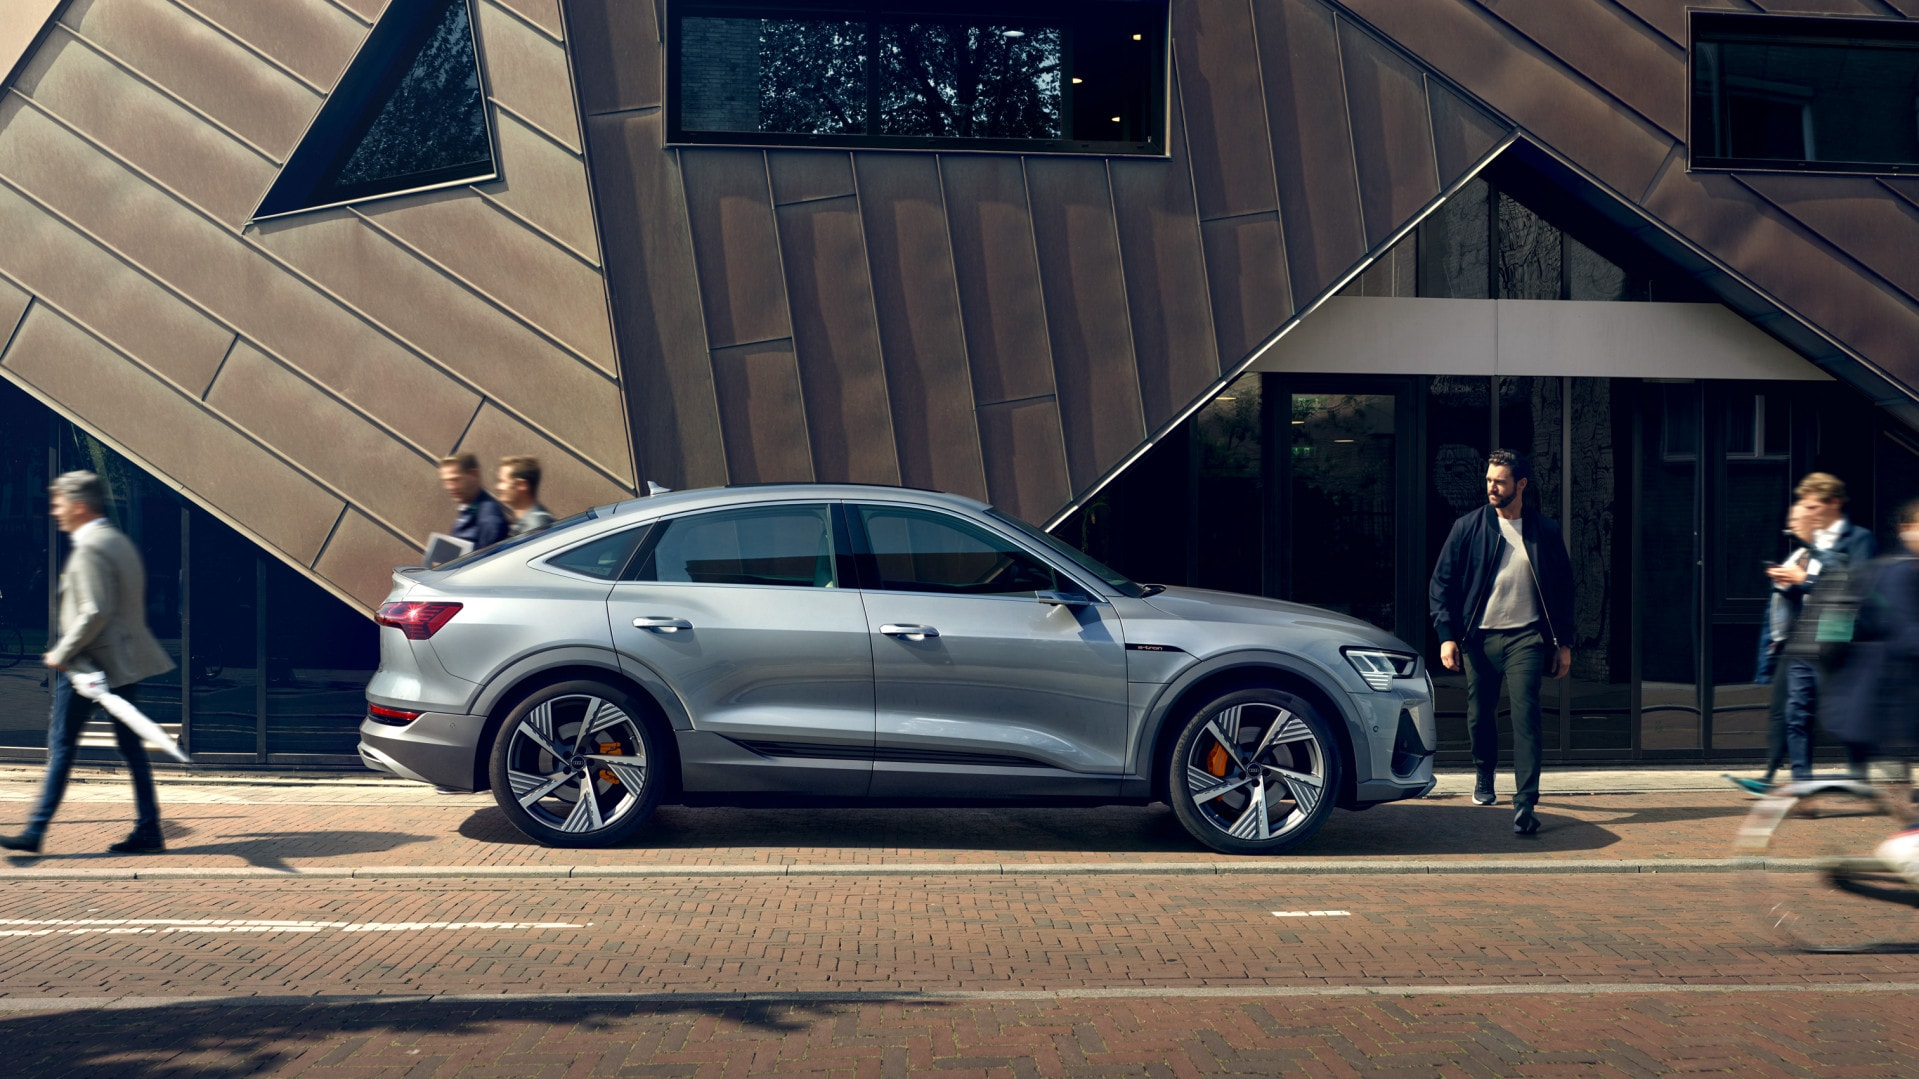 Audi e-tron Sportback in a city